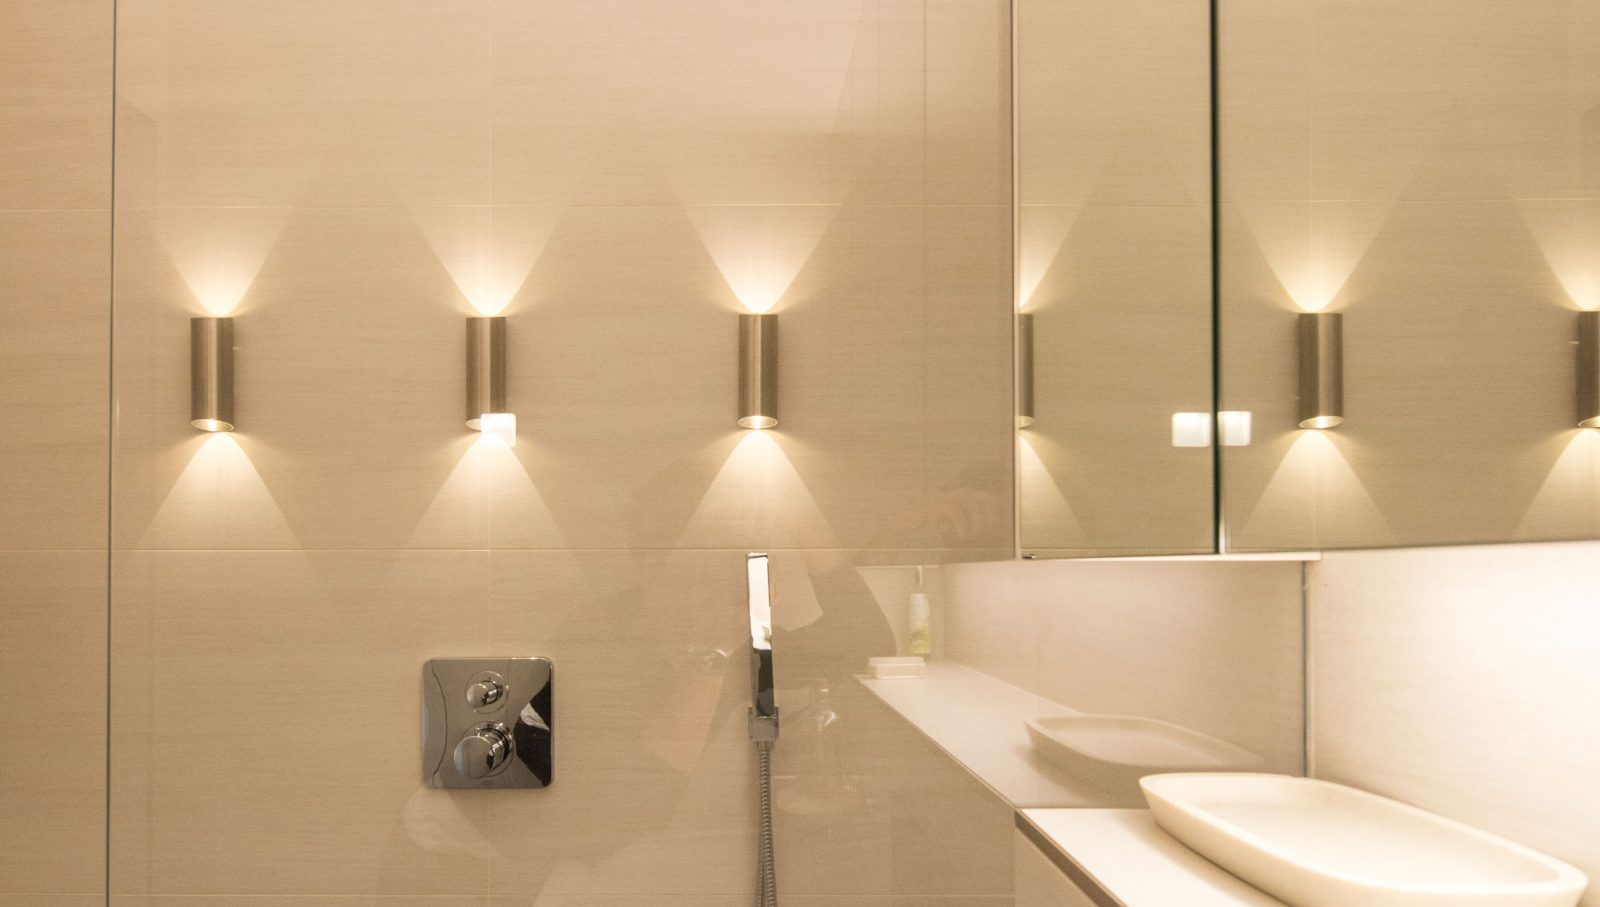 Bathroom Lights Wall Details Residential Lighting Design Consultants Studio N